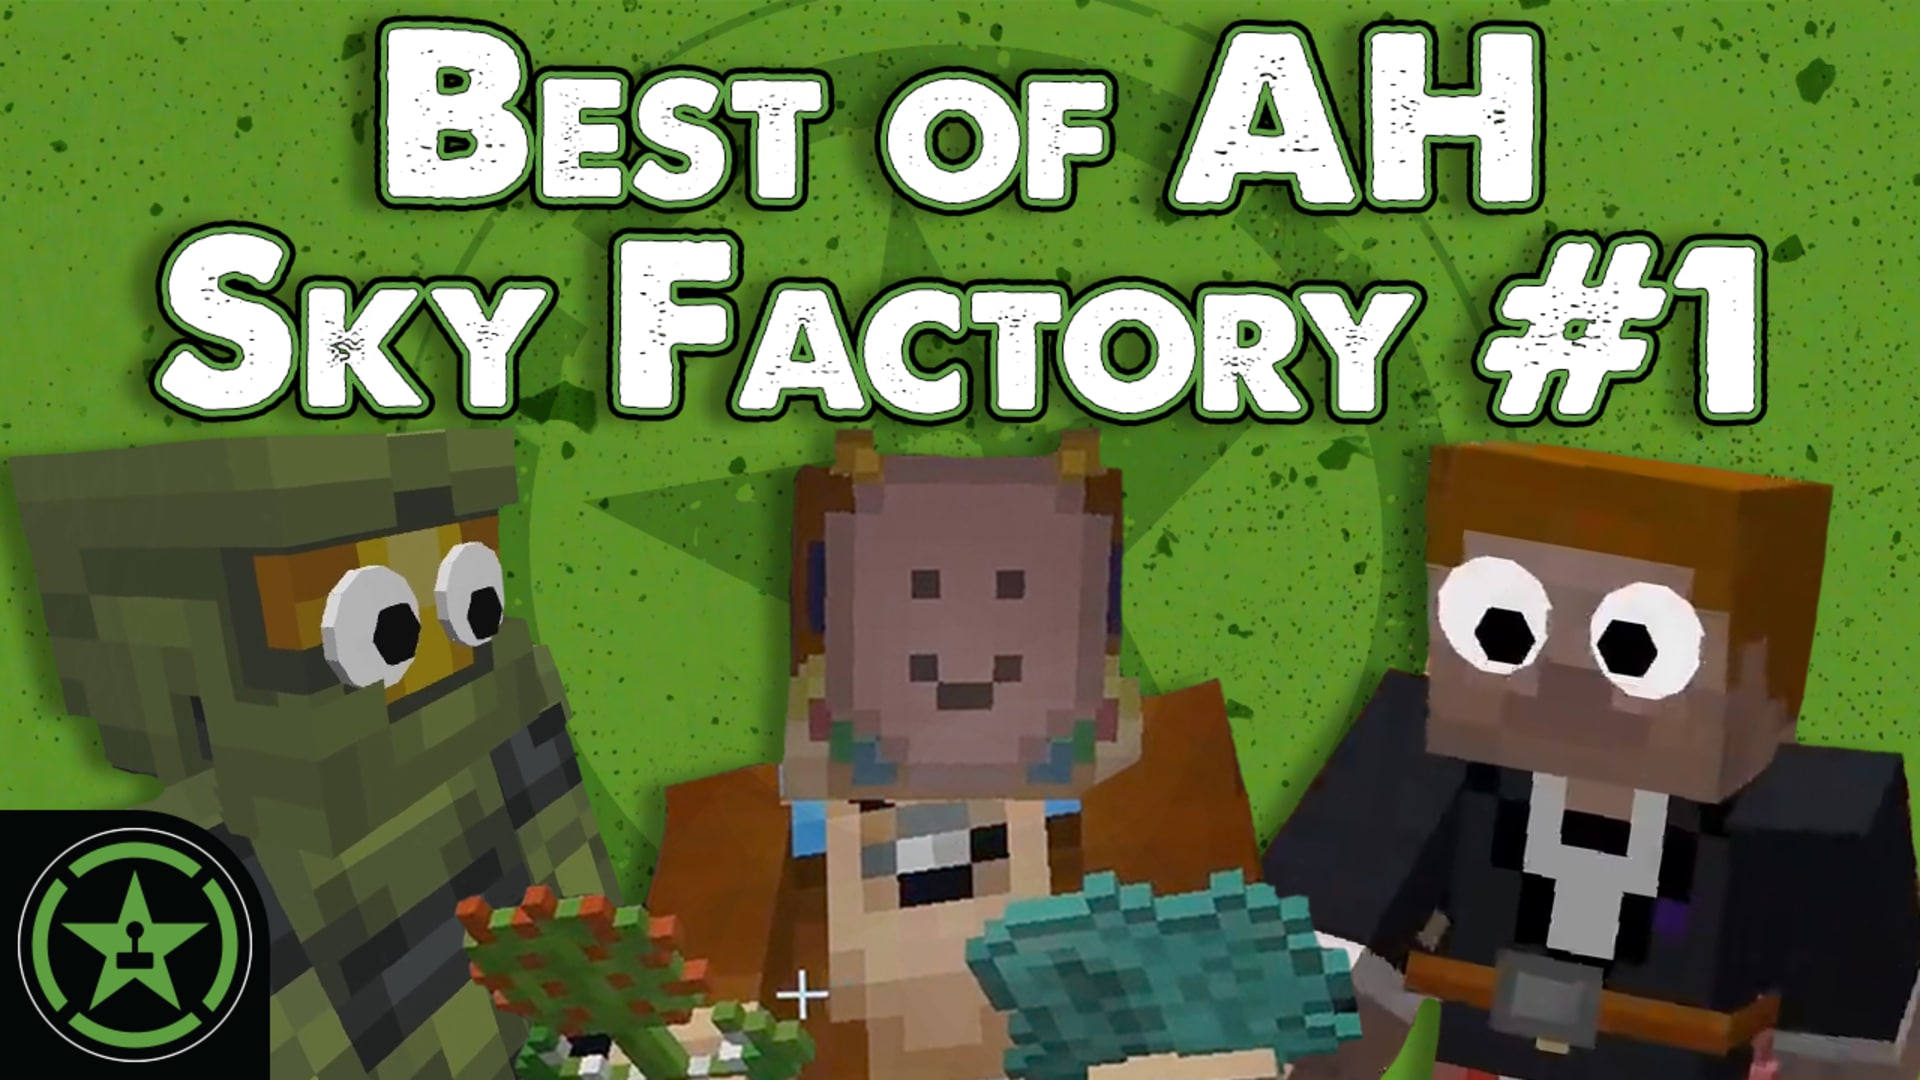 Best of Achievement Hunter - Sky Factory #1 - Rooster Teeth